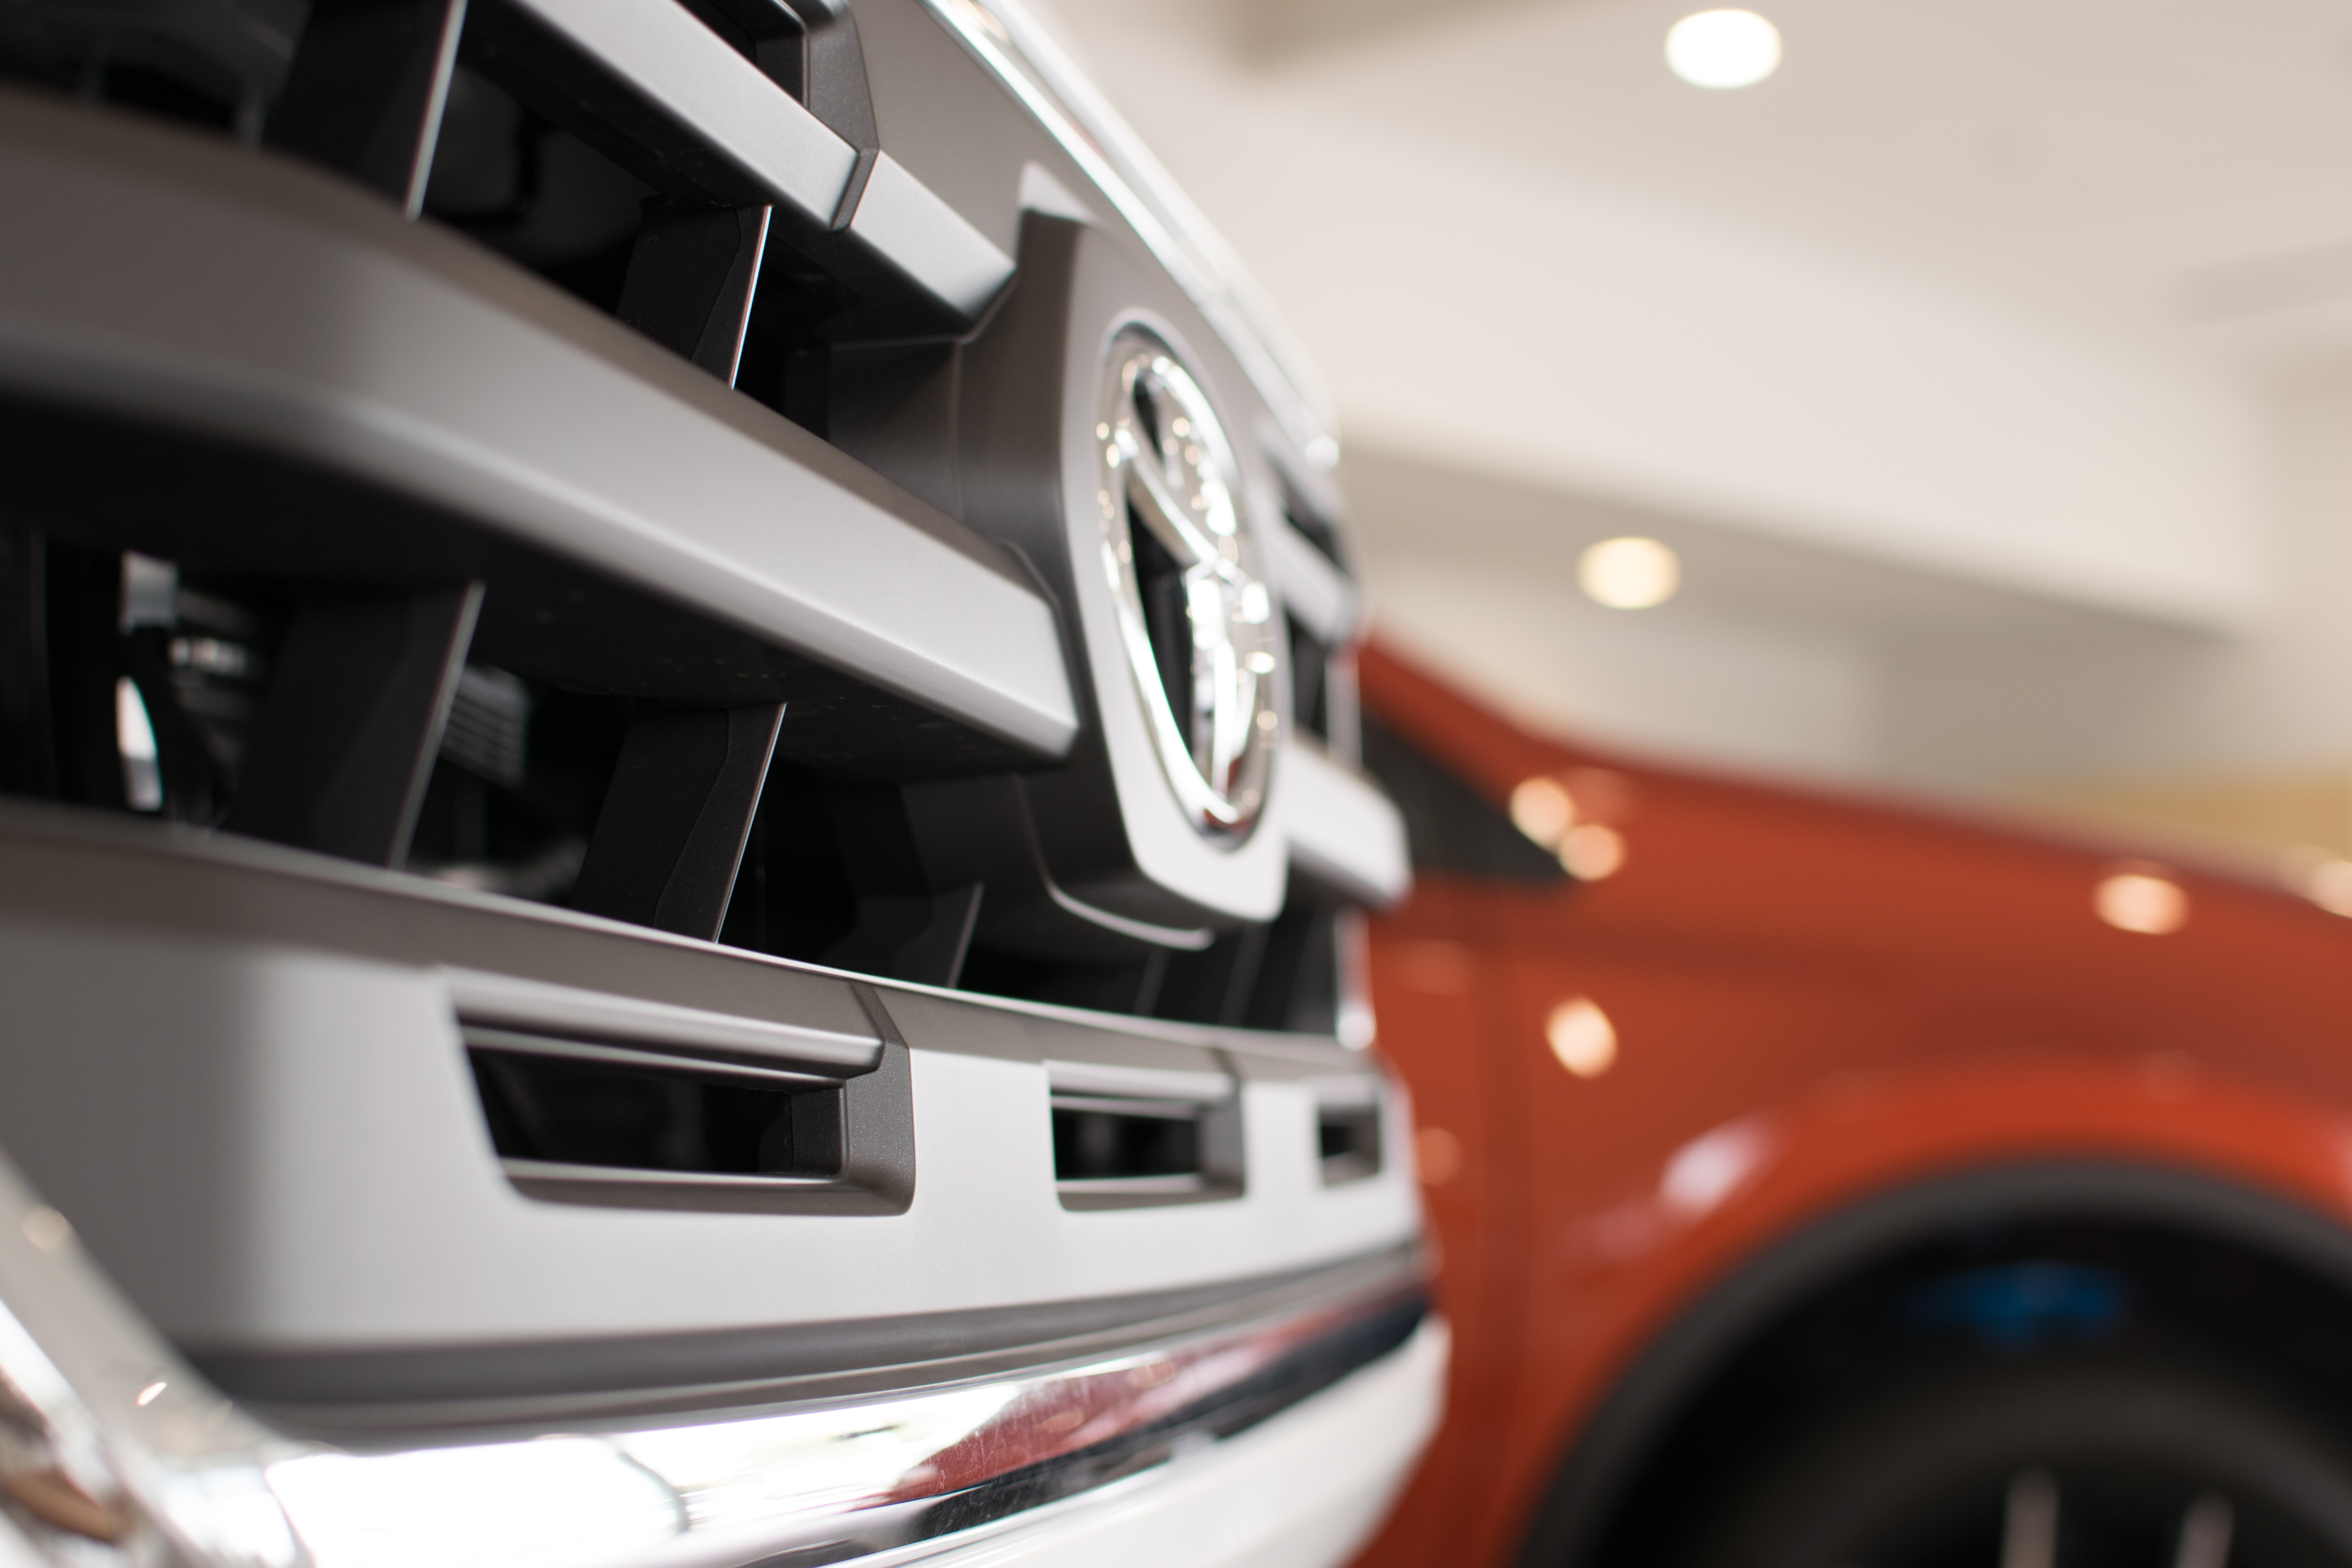 New Car Prices Climb 2% in March